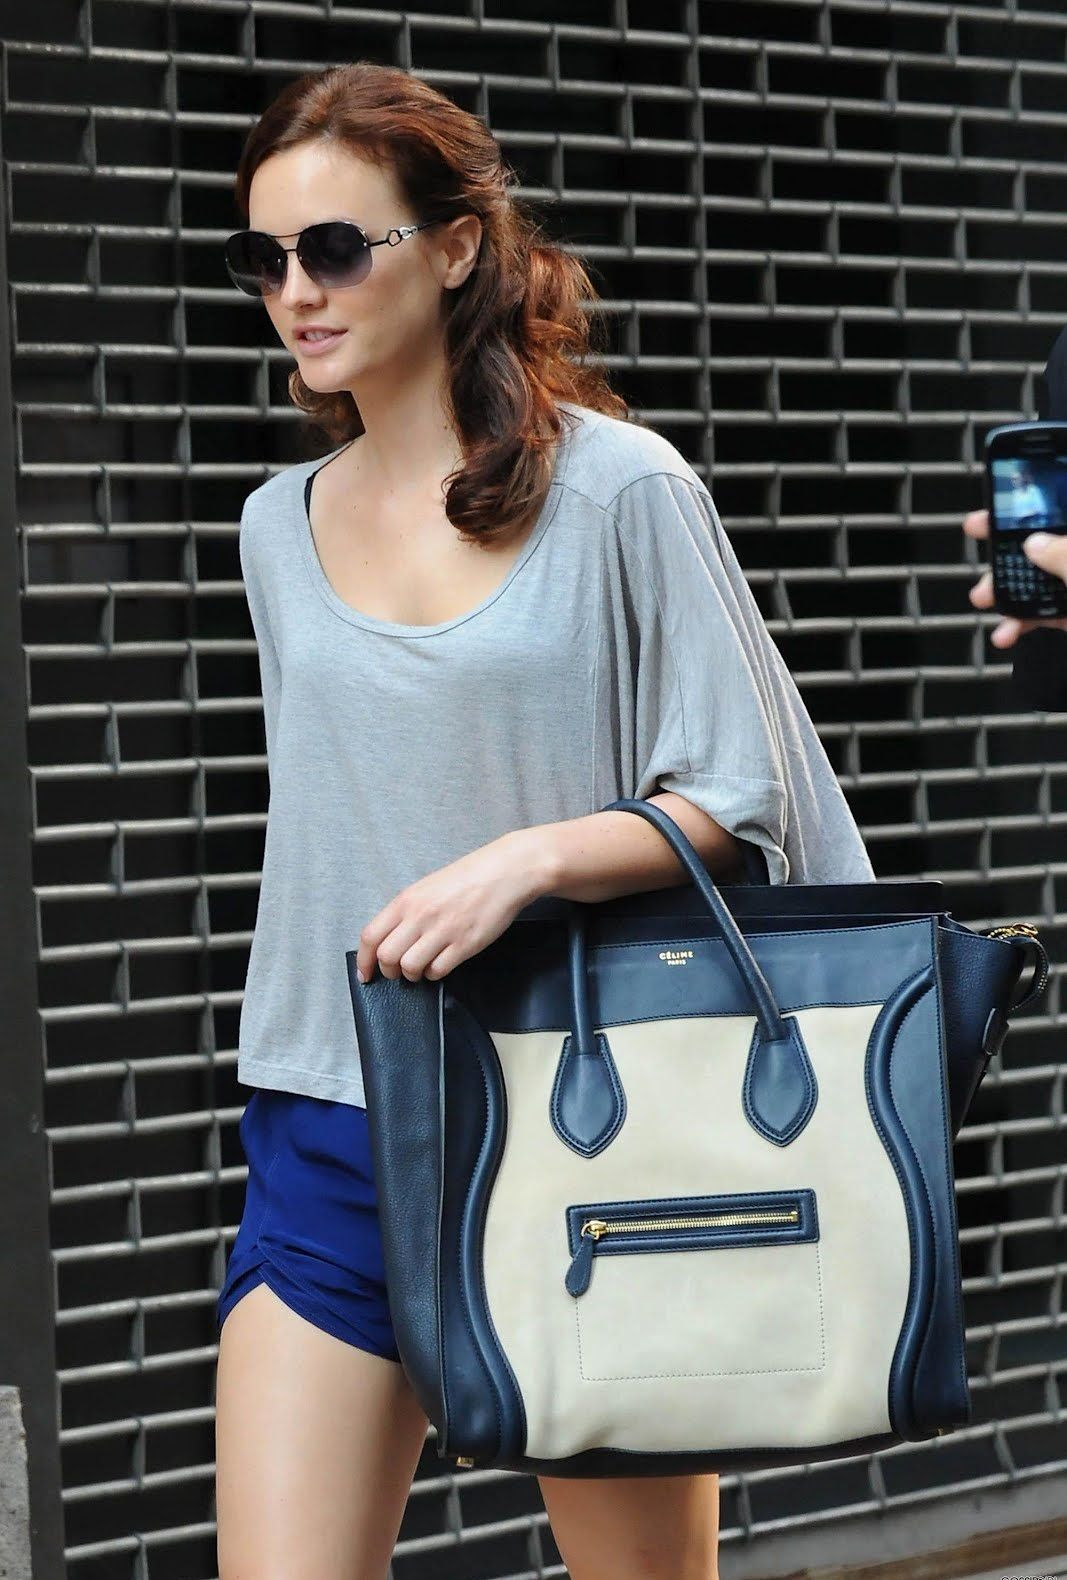 Leighton Meester Celine Luggage Tote 1